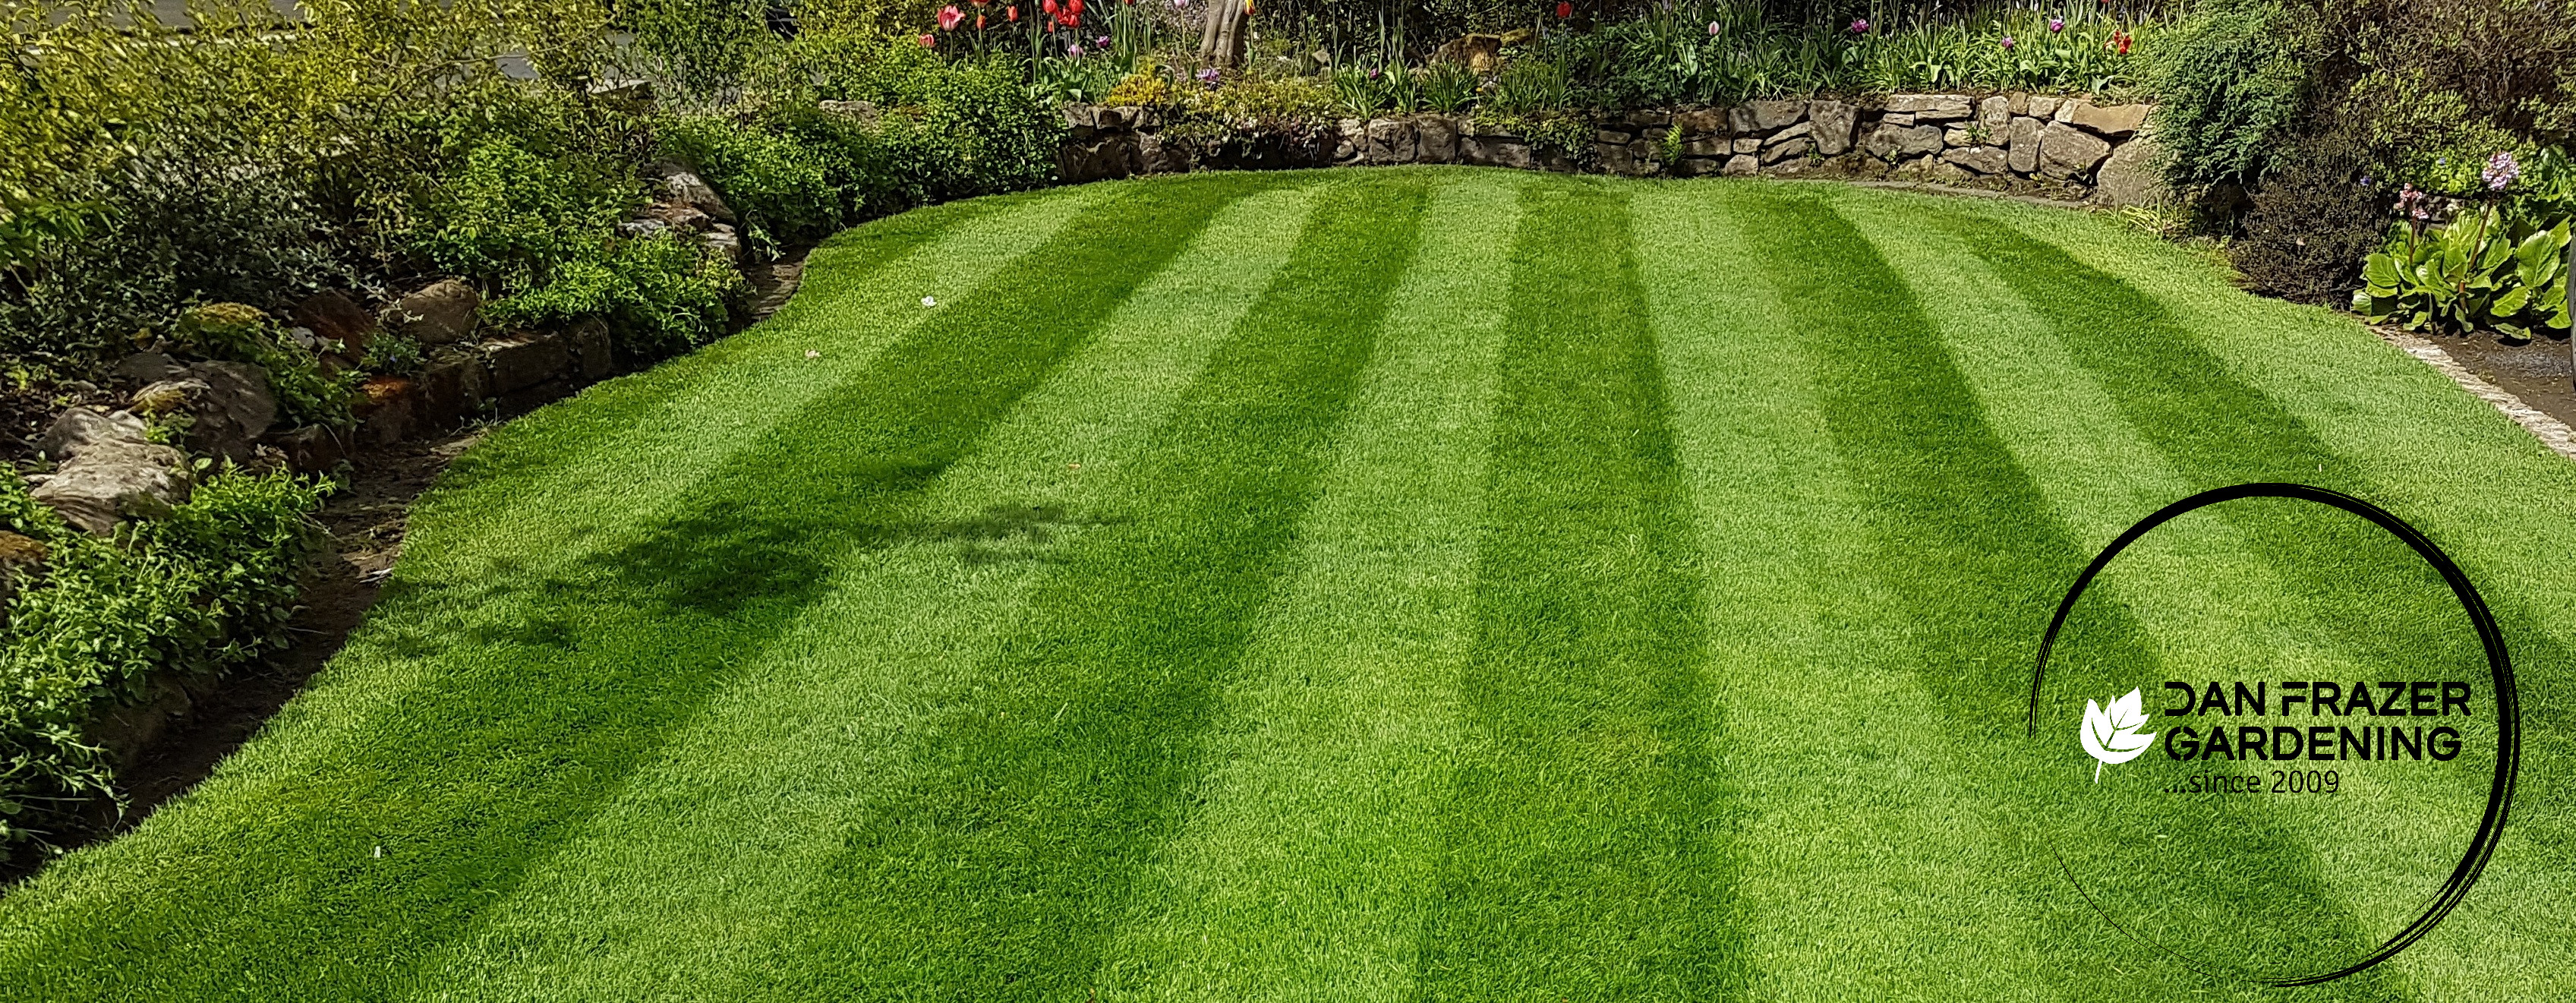 Lawn treatments milngavie